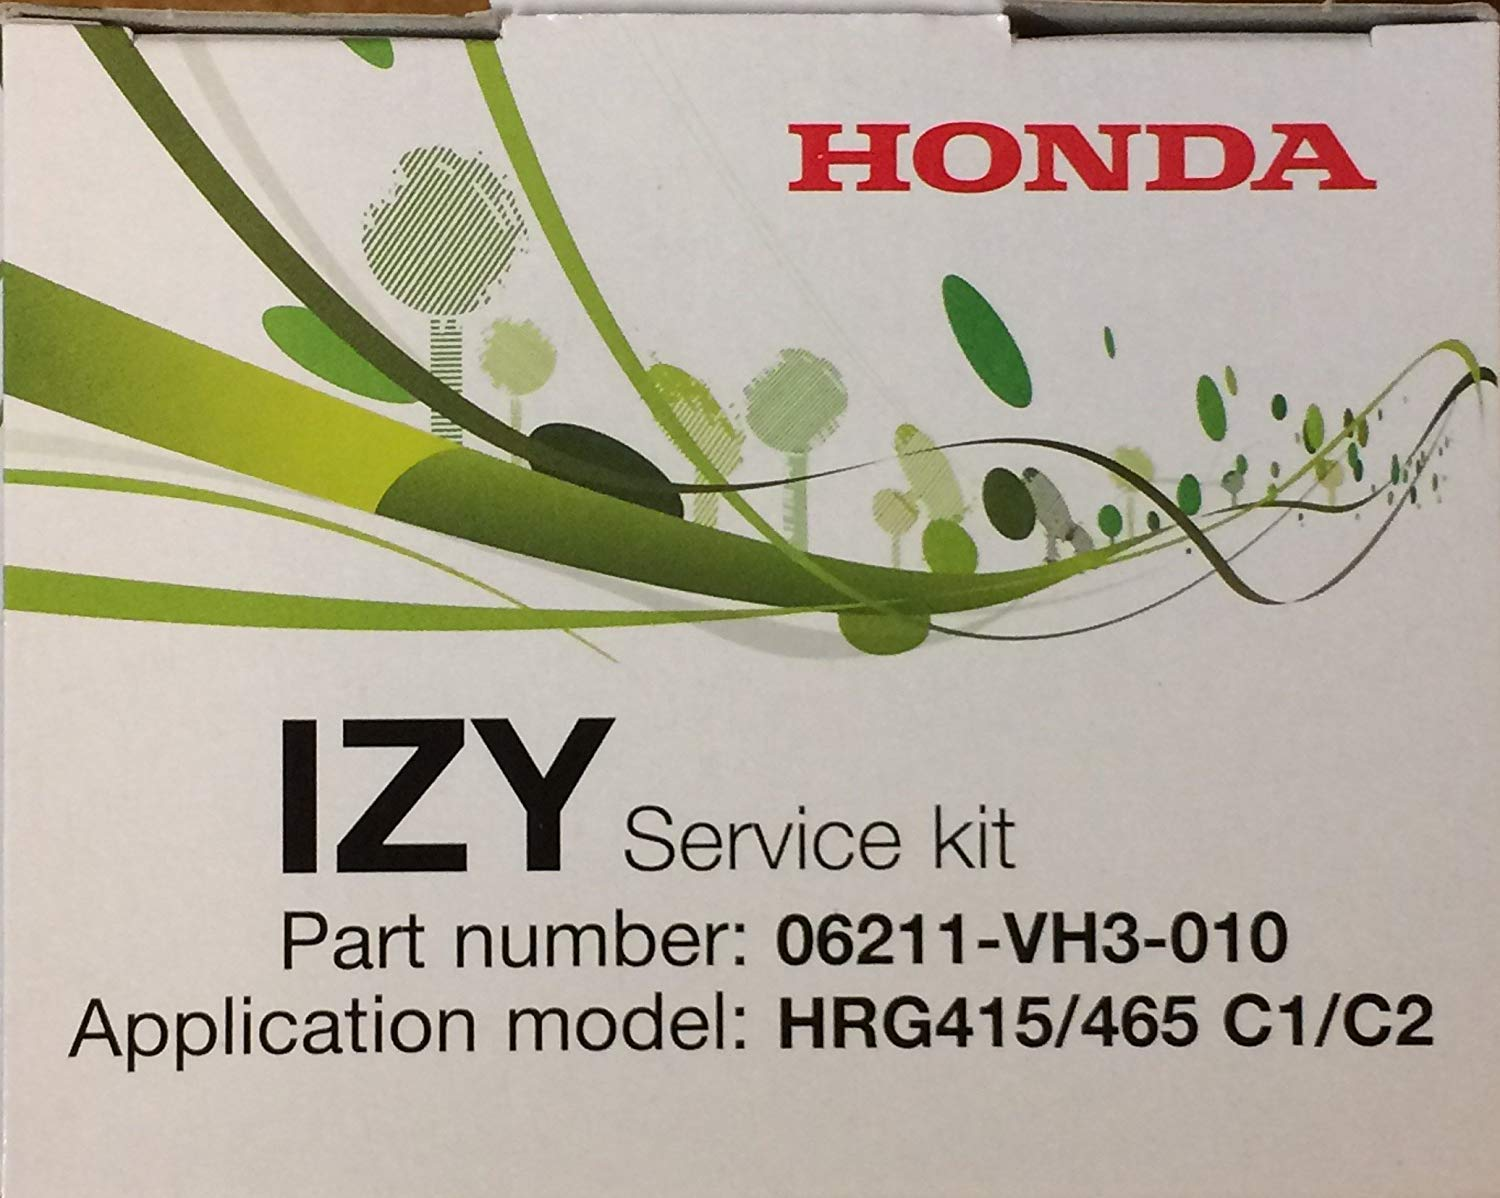 Honda Izy Kit de mantenimiento (GC/GCV motores): Amazon.es ...